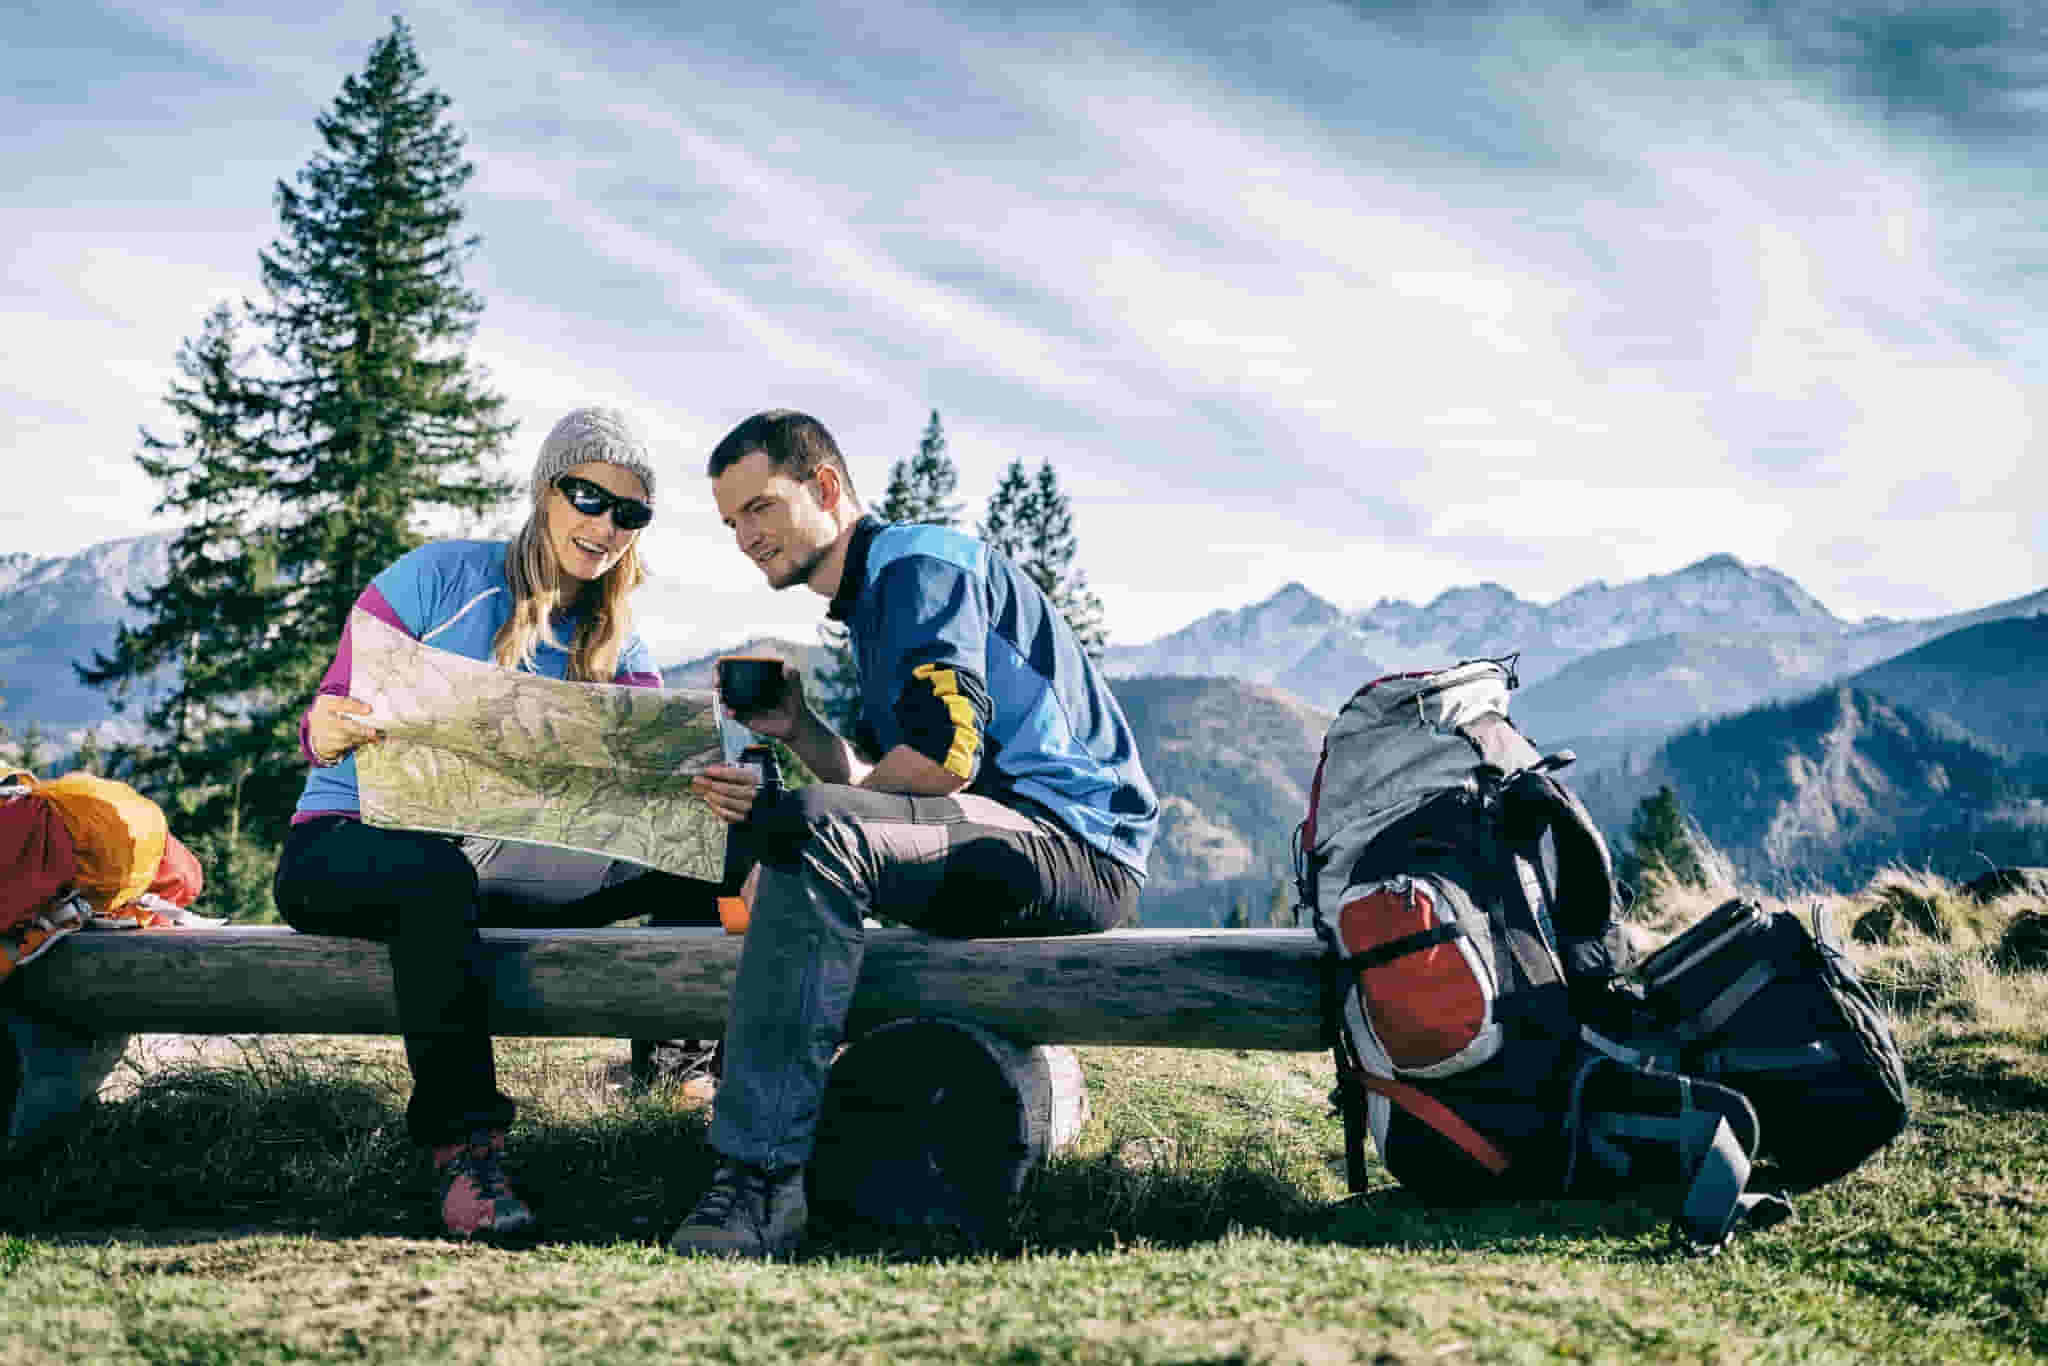 How To Plan Your Next Camping Trip Like A Pro